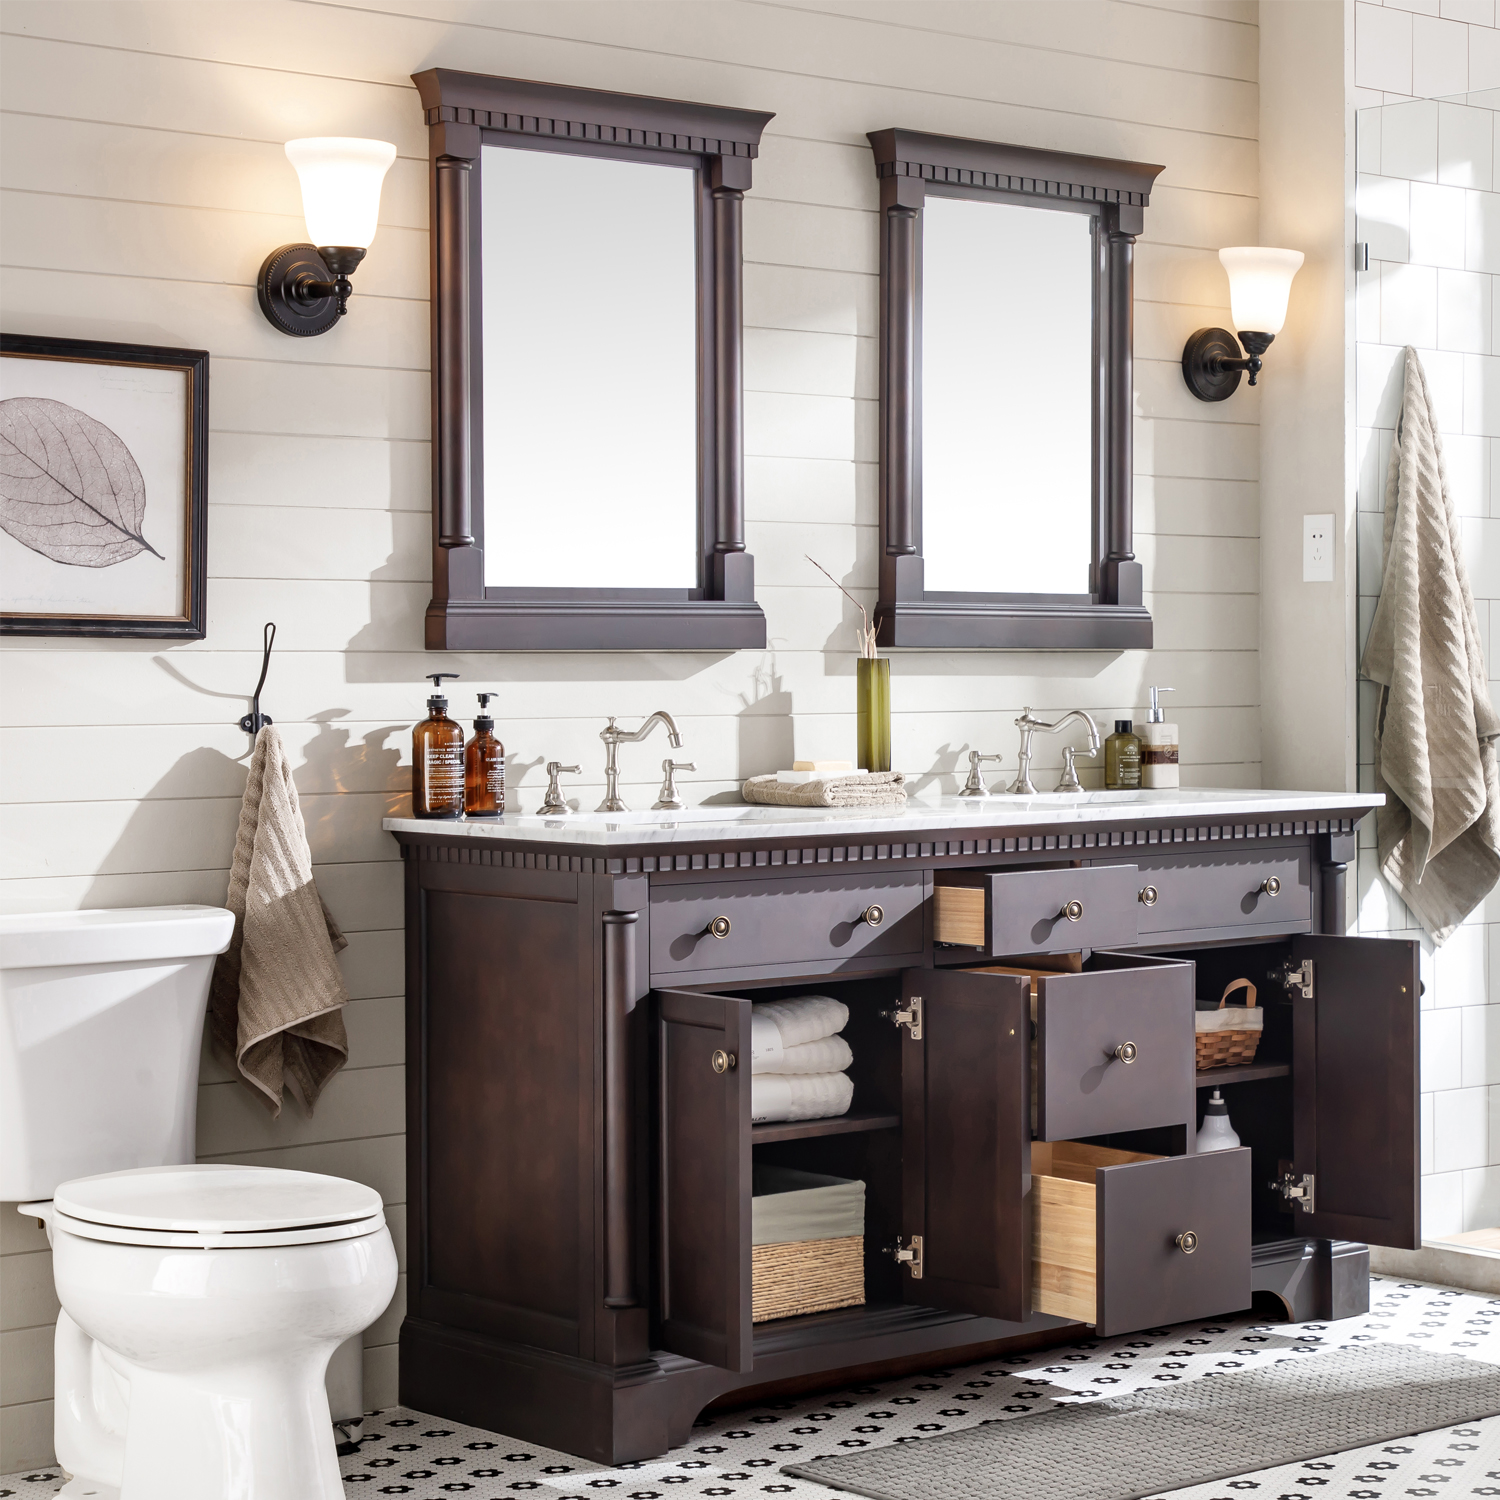 Eviva Preston 73 In Aged Chocolate Bathroom Vanity With White Carrara Marble Countertop And Double Undermount Sinks